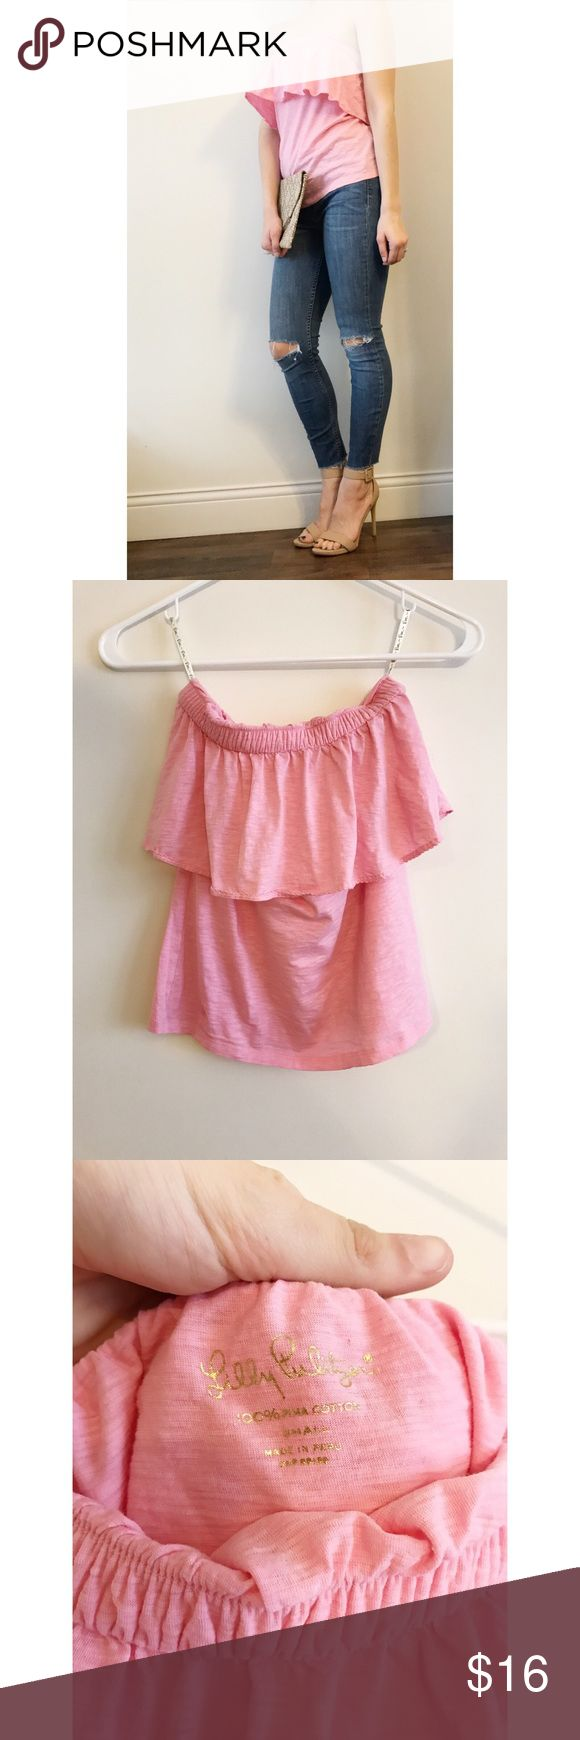 Lily Pulitzer Hubba Bubba Tube Top Love this one, great condition. I have it in white too that I am keeping but I don't really wear pink so it's time to say good bye! Sorry no trades. Lilly Pulitzer Tops